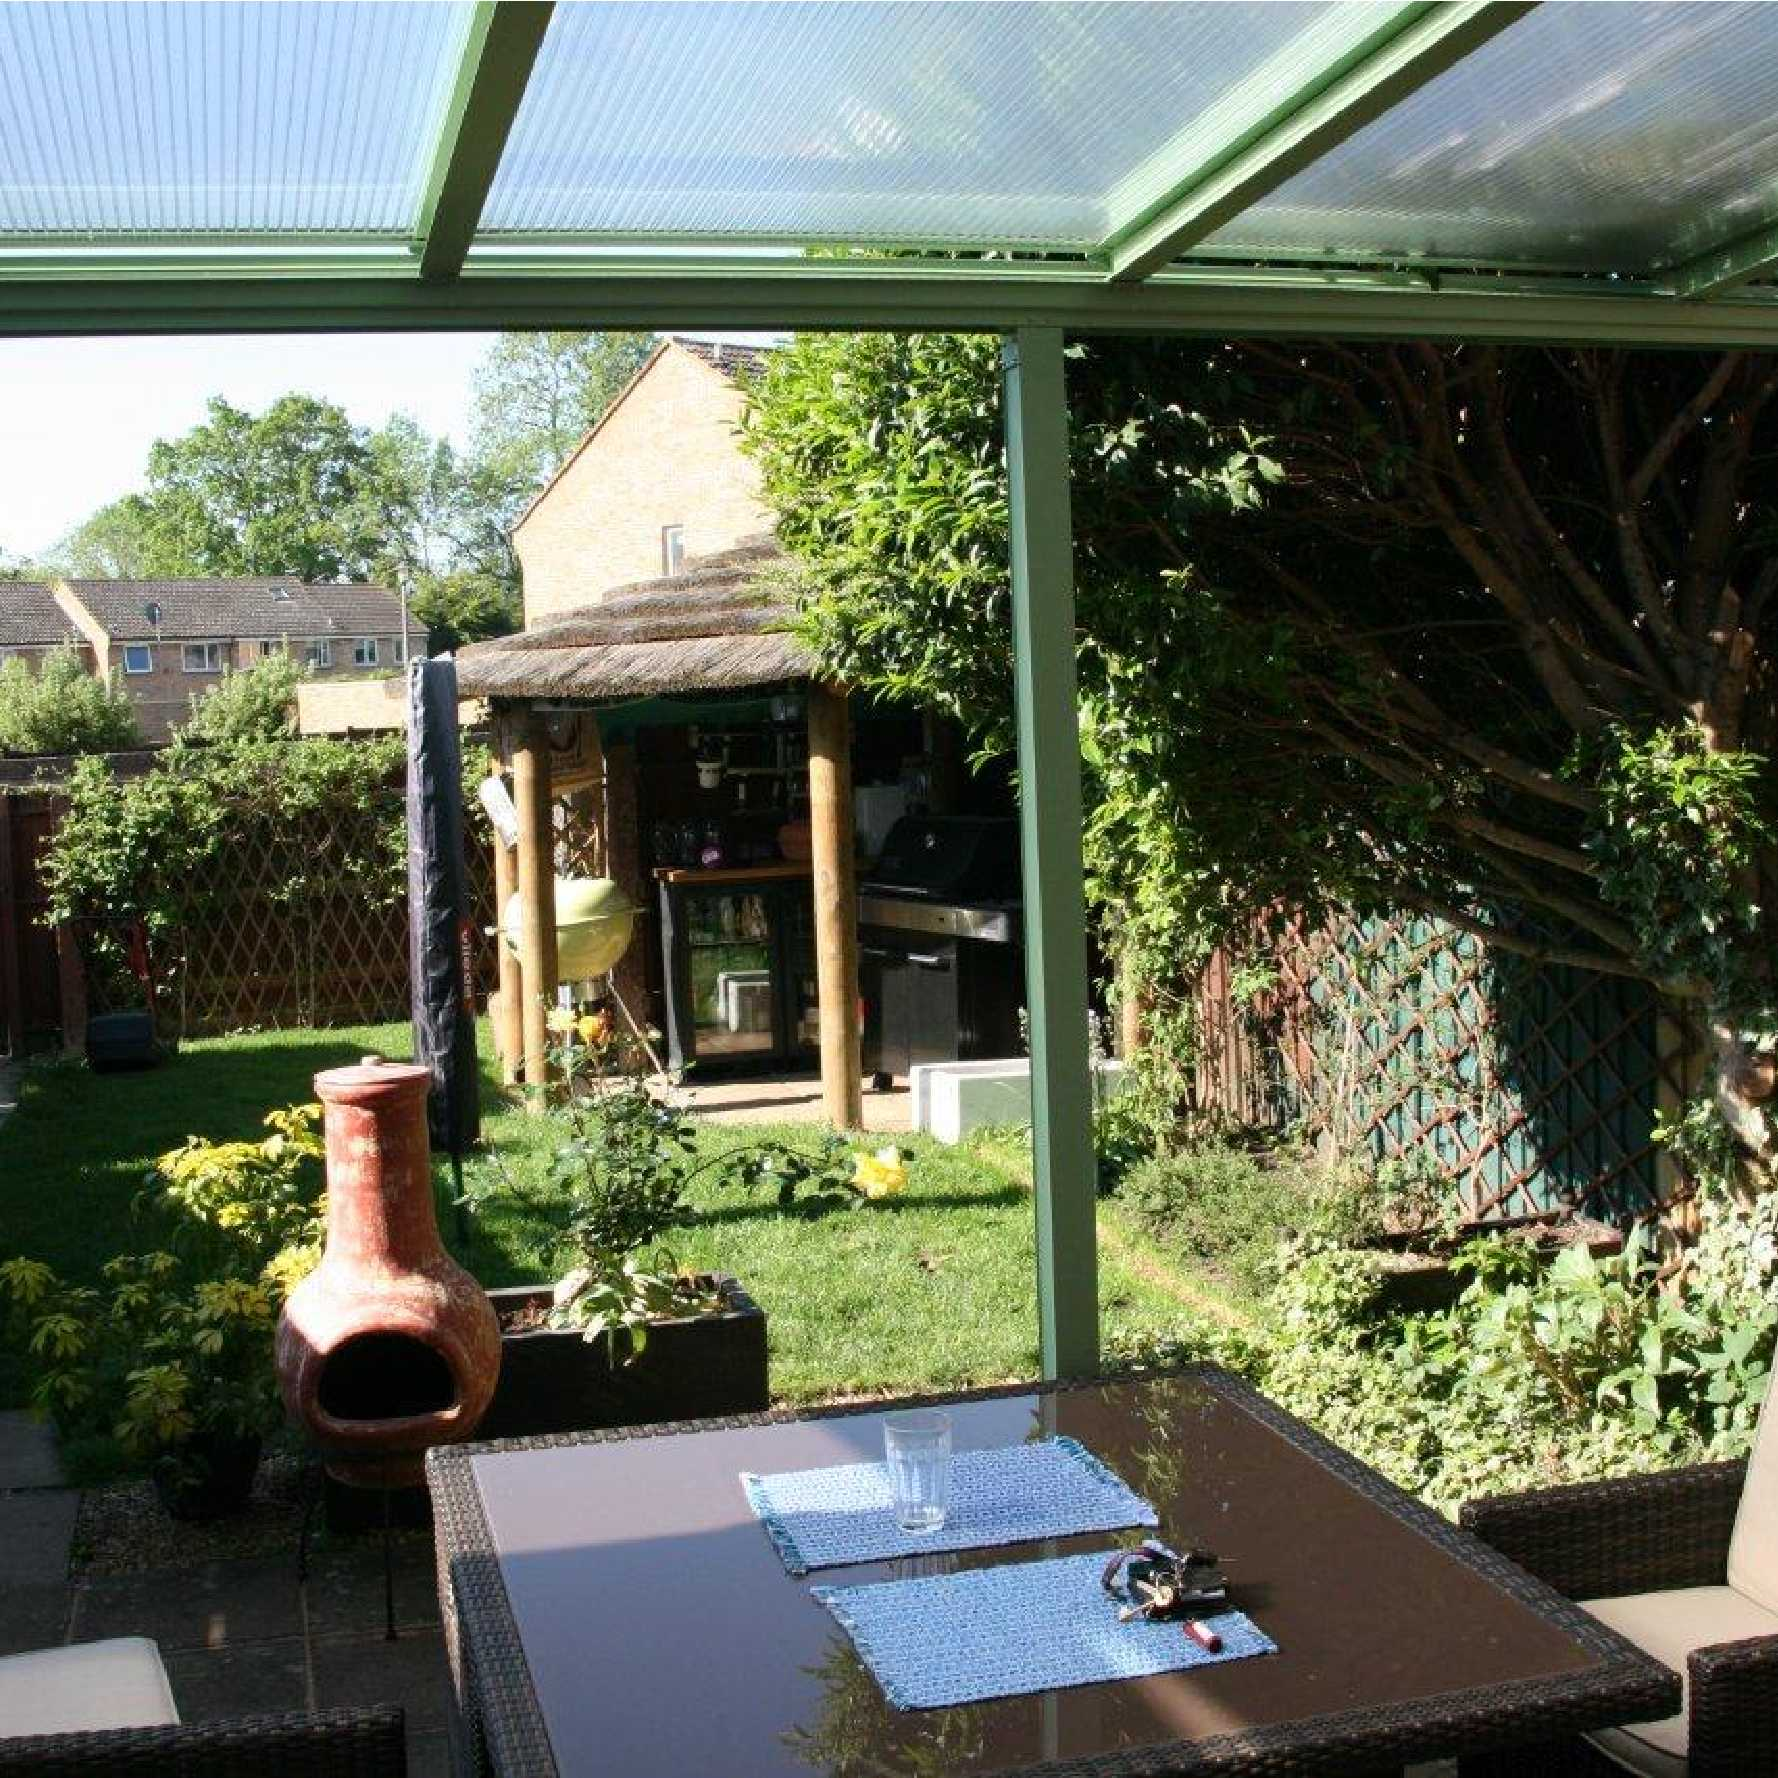 Affordable Omega Smart Lean-To Canopy with 16mm Polycarbonate Glazing - 11.6m (W) x 3.0m (P), (5) Supporting Posts